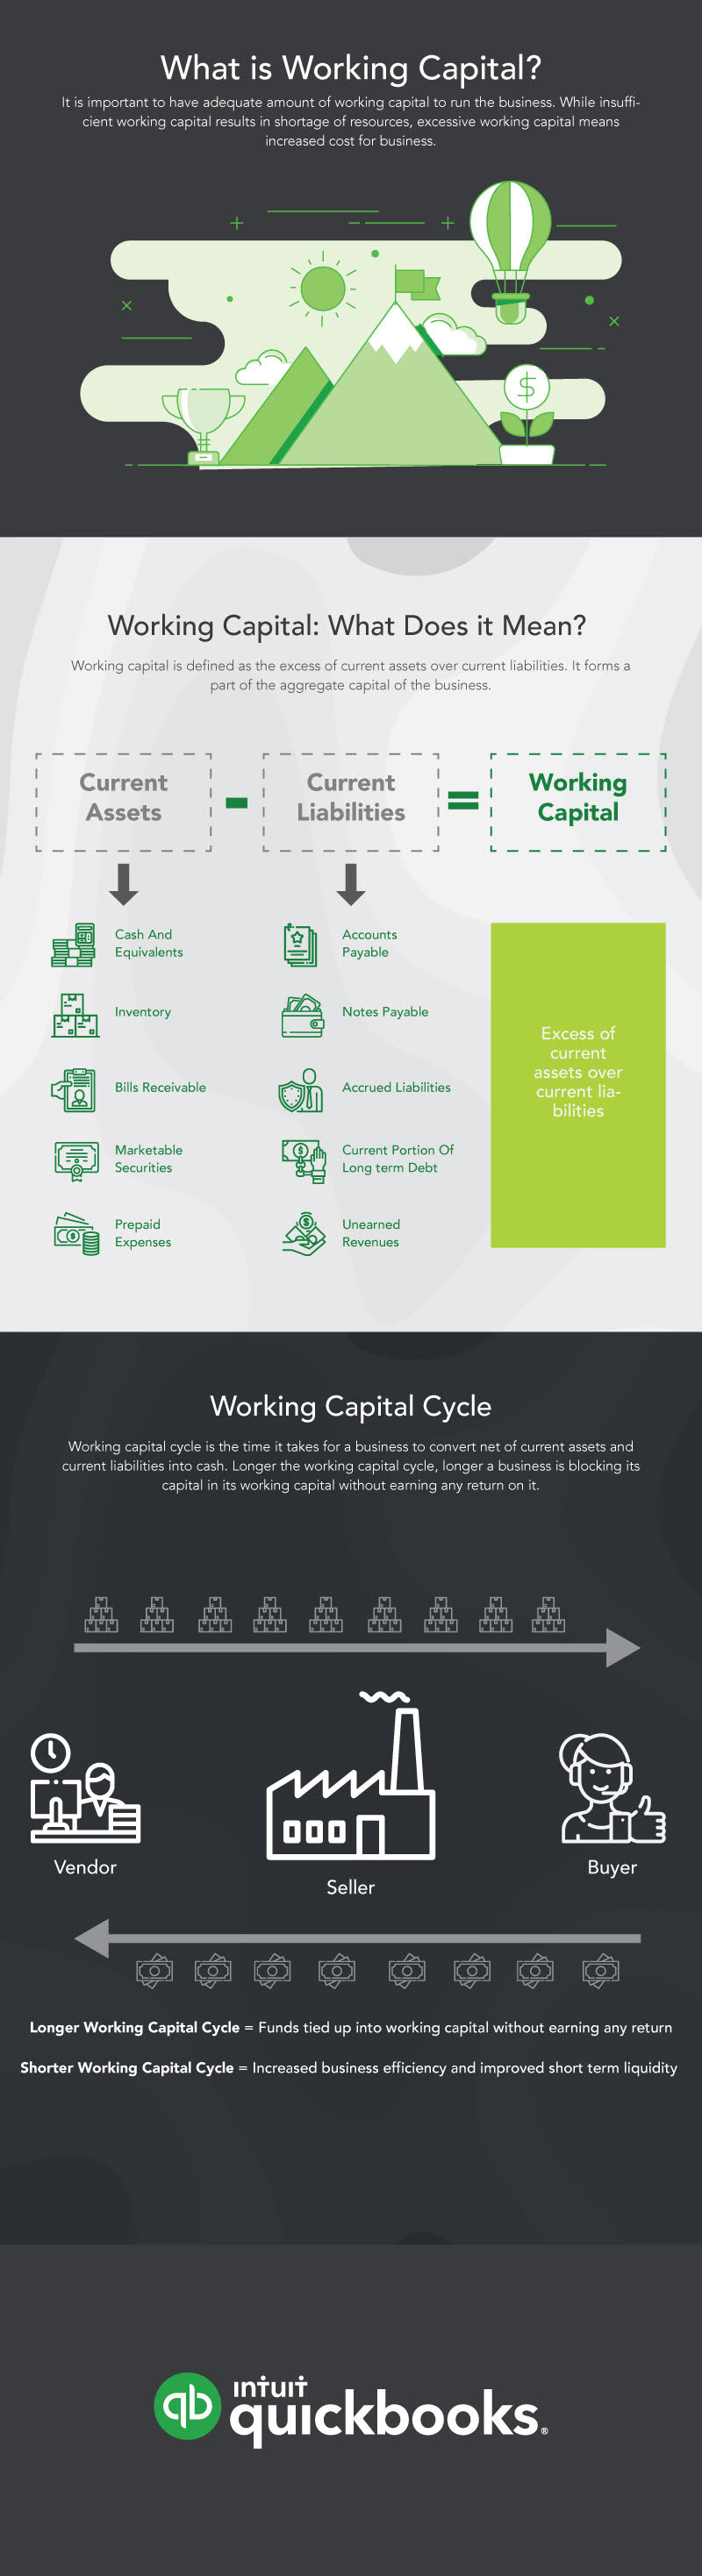 WHAT IS WORKING CAPITAL